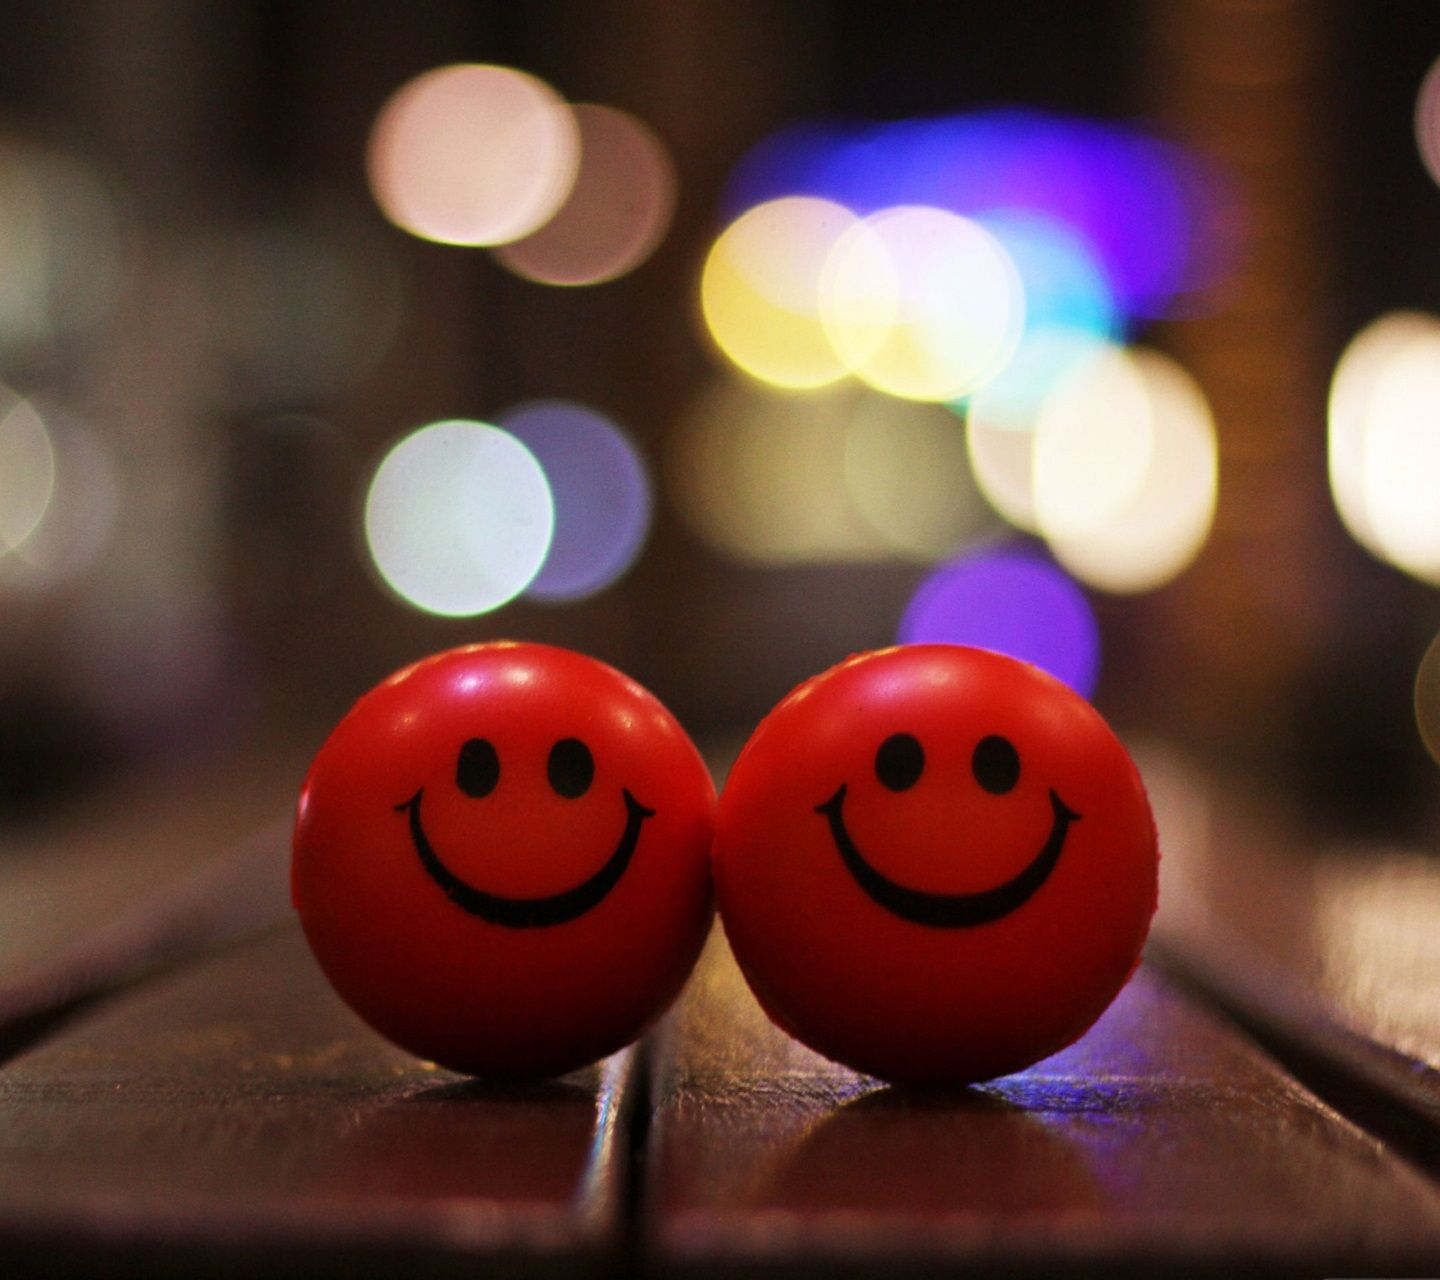 Cool Smiley Wallpapers For Mobile Phones Smiley Symbol News To Go